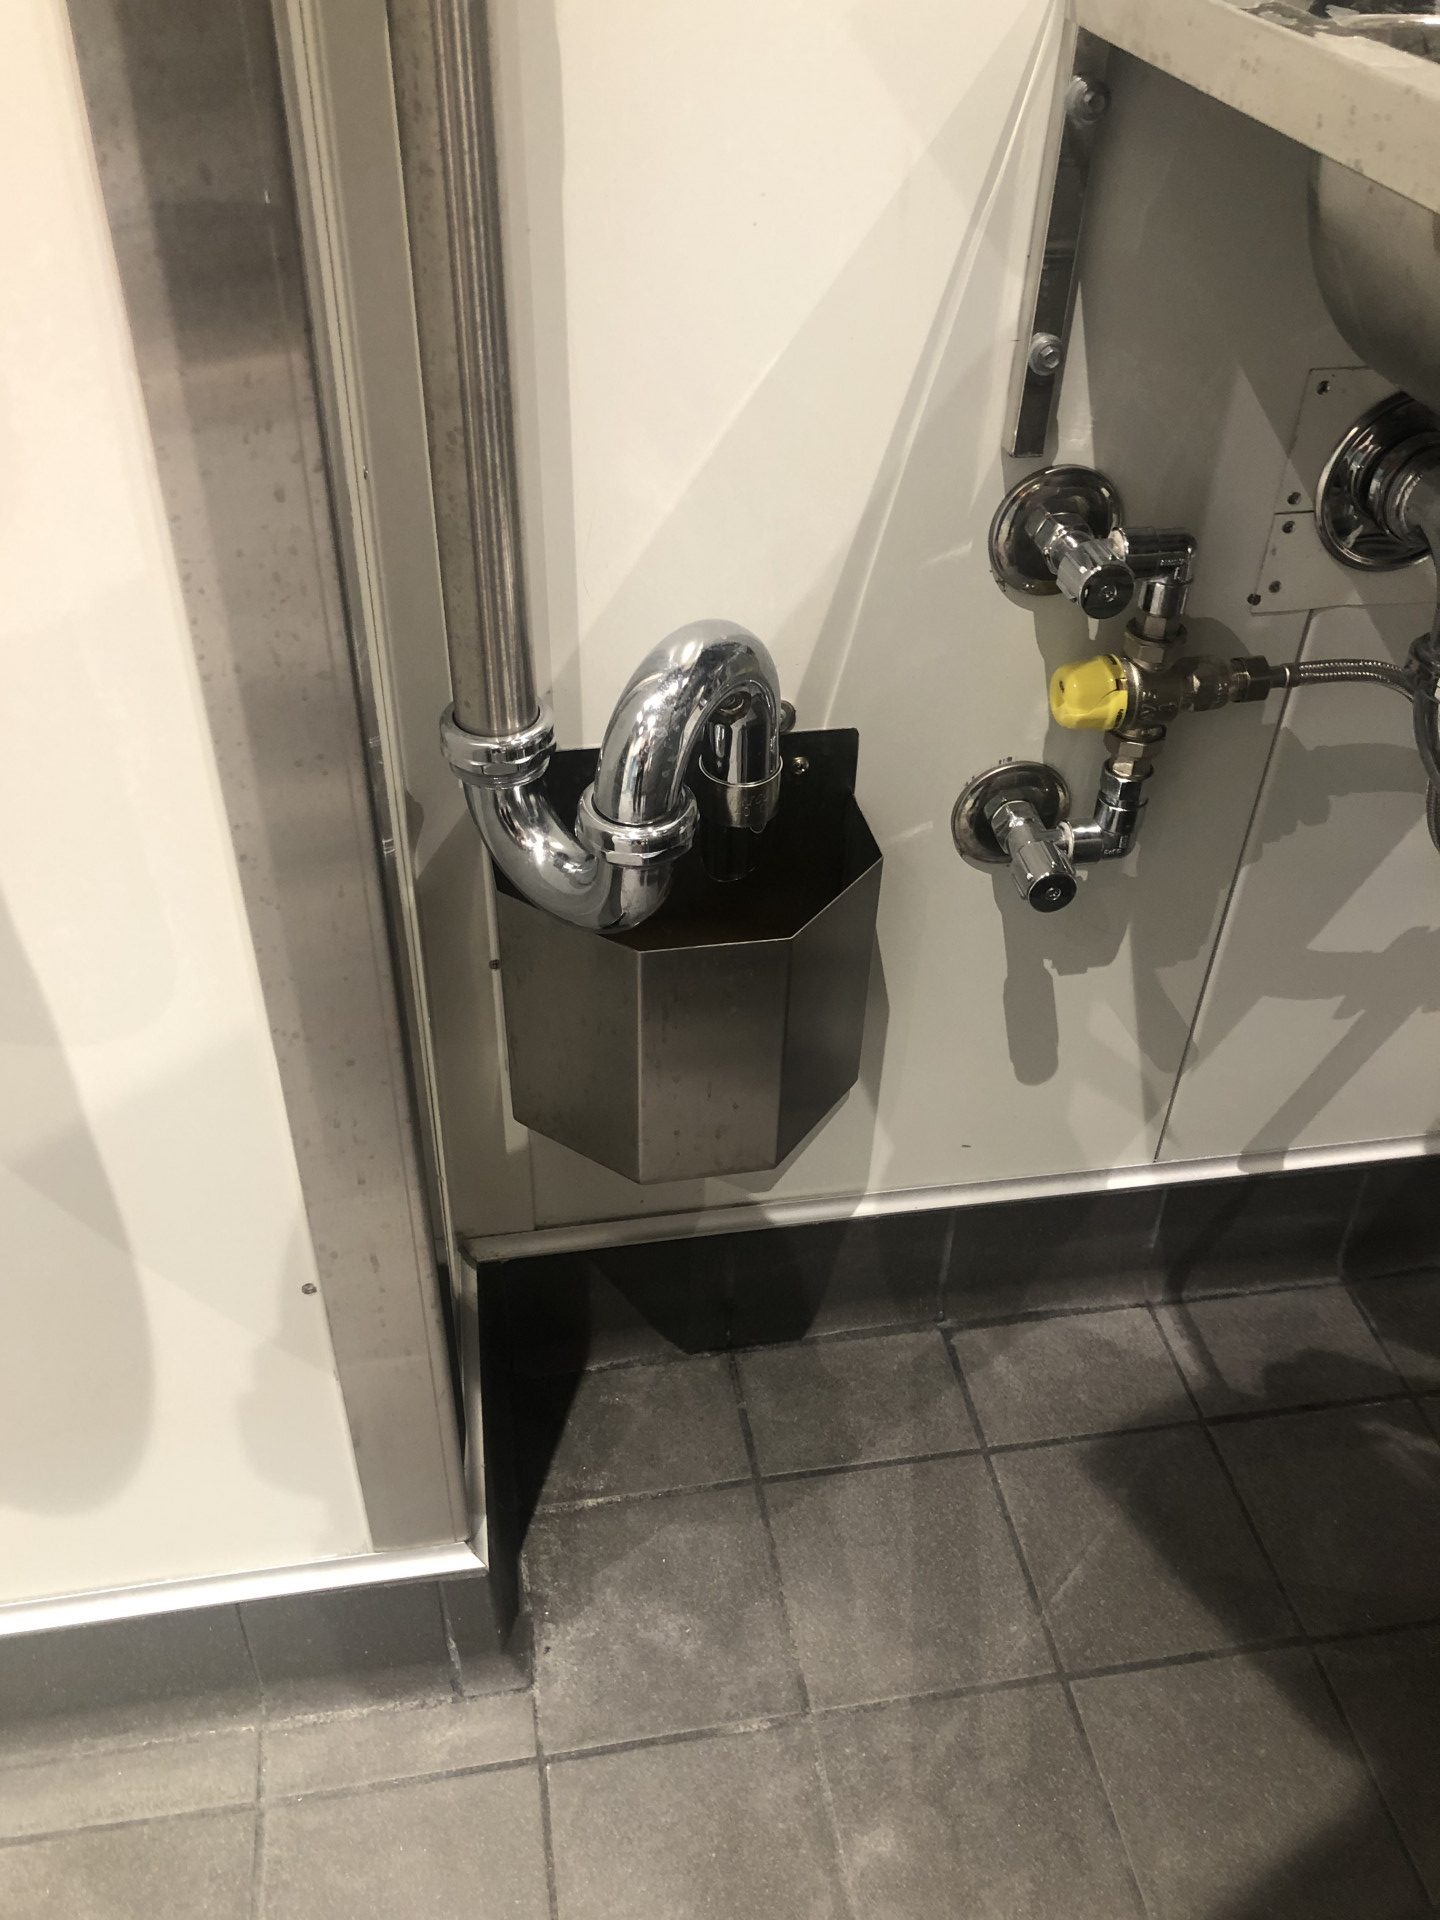 inglewood woolworths stainless steel tundish commercial kitchen